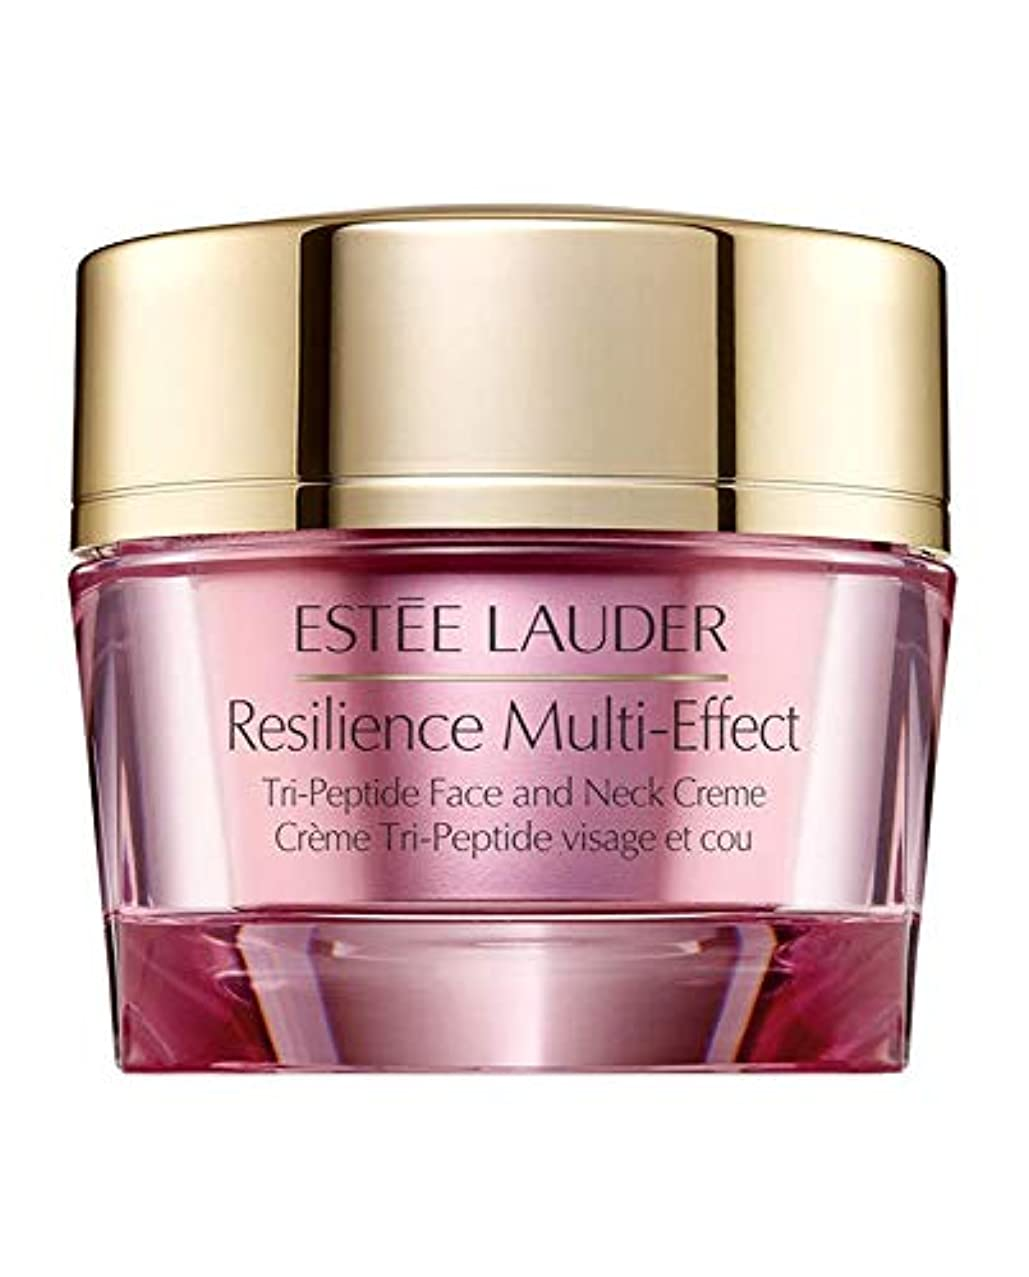 マージ証明する実証するエスティローダー Resilience Multi-Effect Tri-Peptide Face and Neck Creme SPF 15 - For Normal/Combination Skin 50ml/1.7oz...